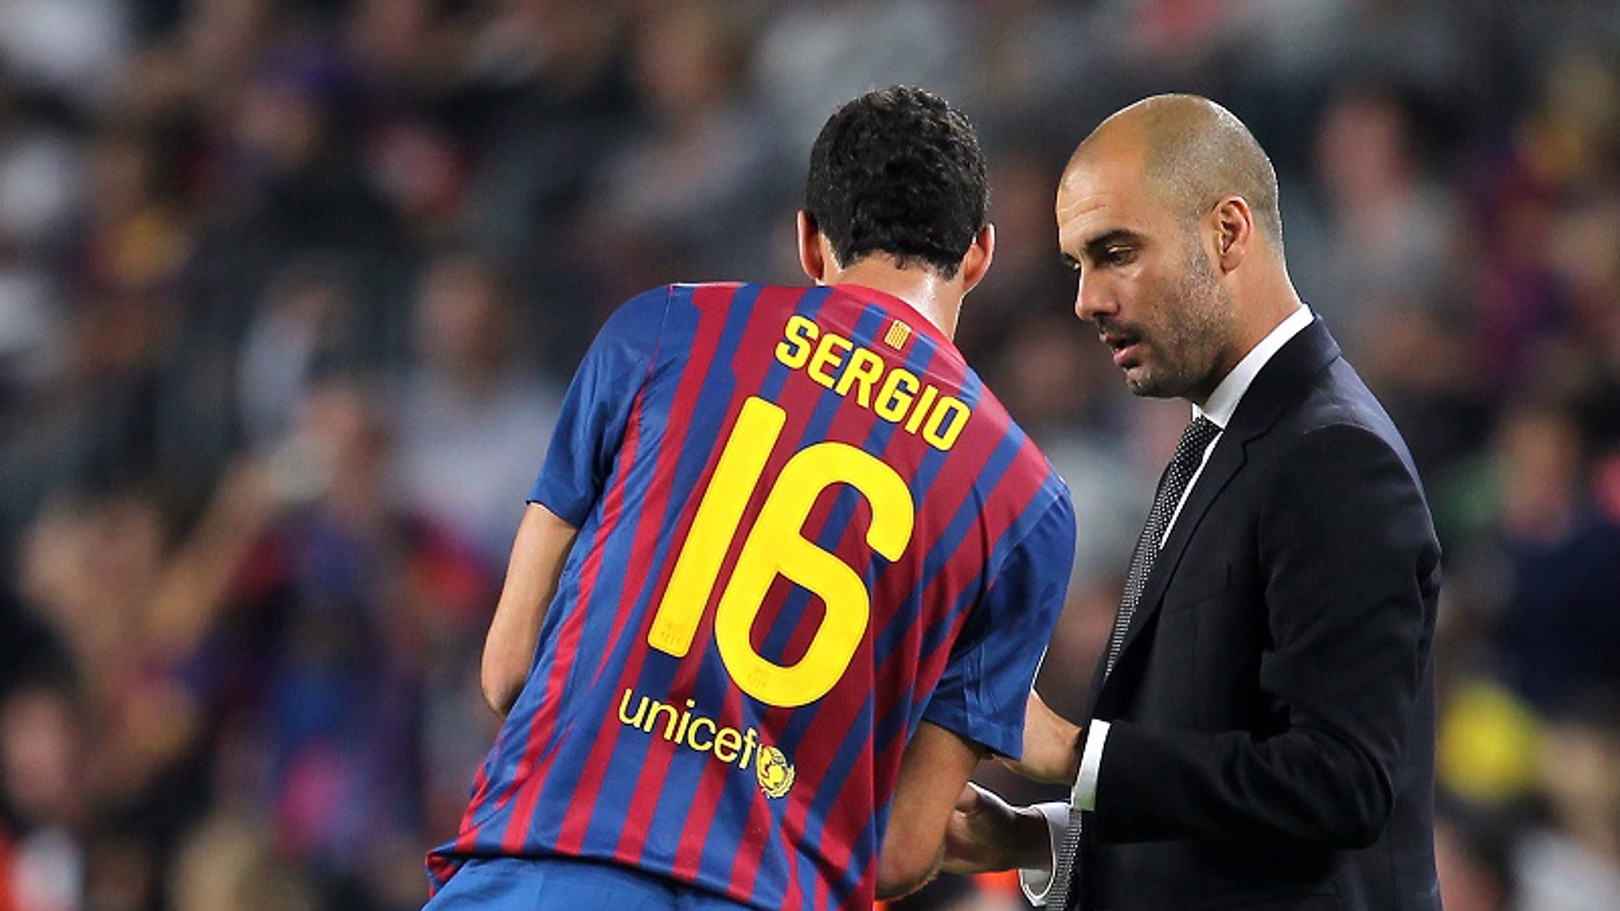 TALKING TACTICS: Pep delivers orders on the touchline